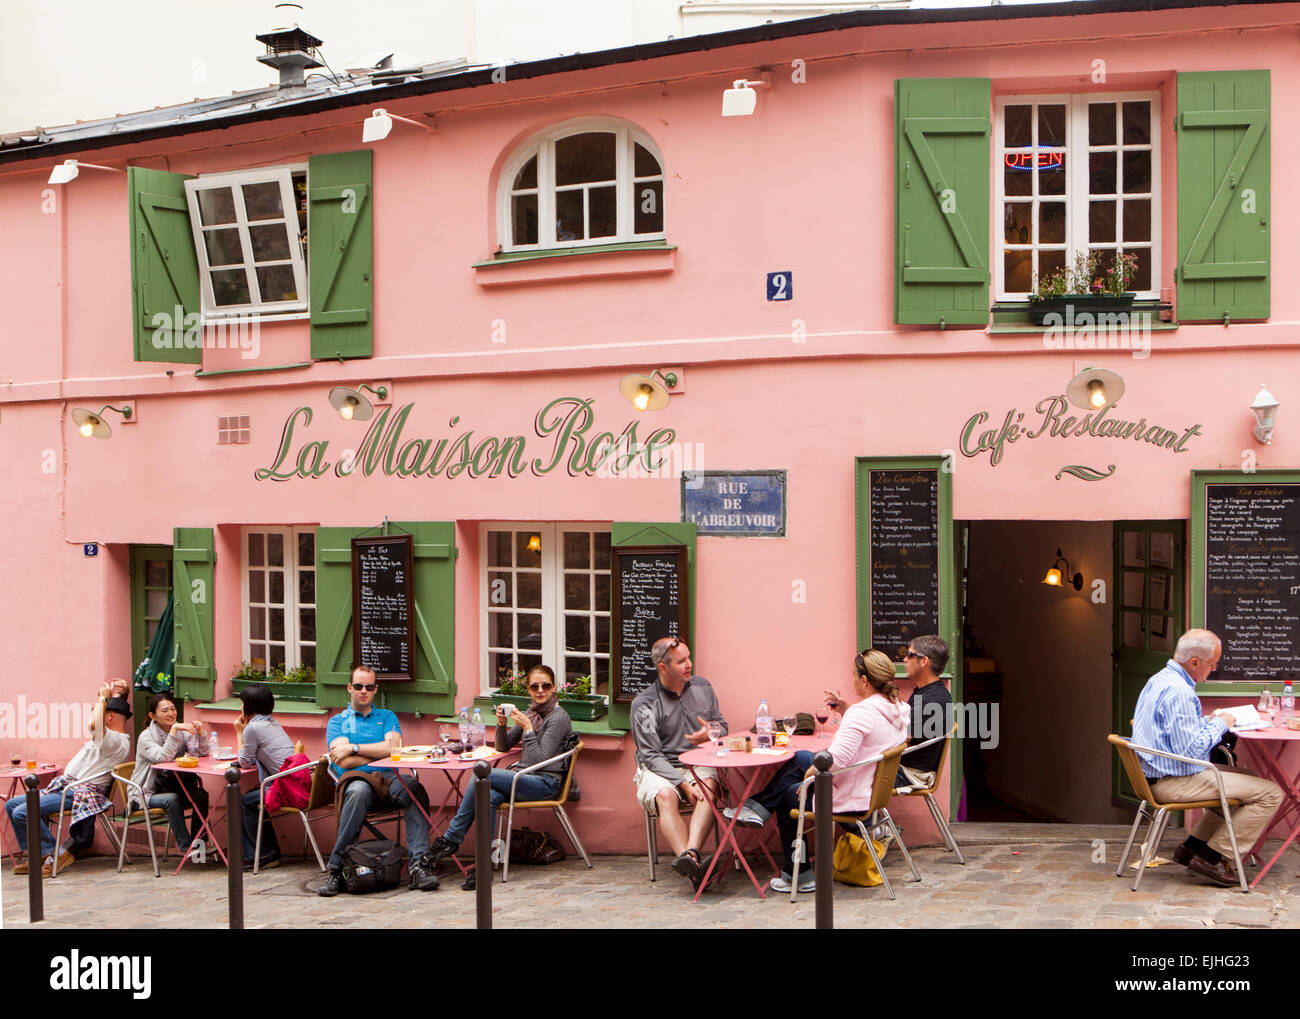 Outdoor eating at la maison rose cafe montmartre paris for La maison du cafe paris